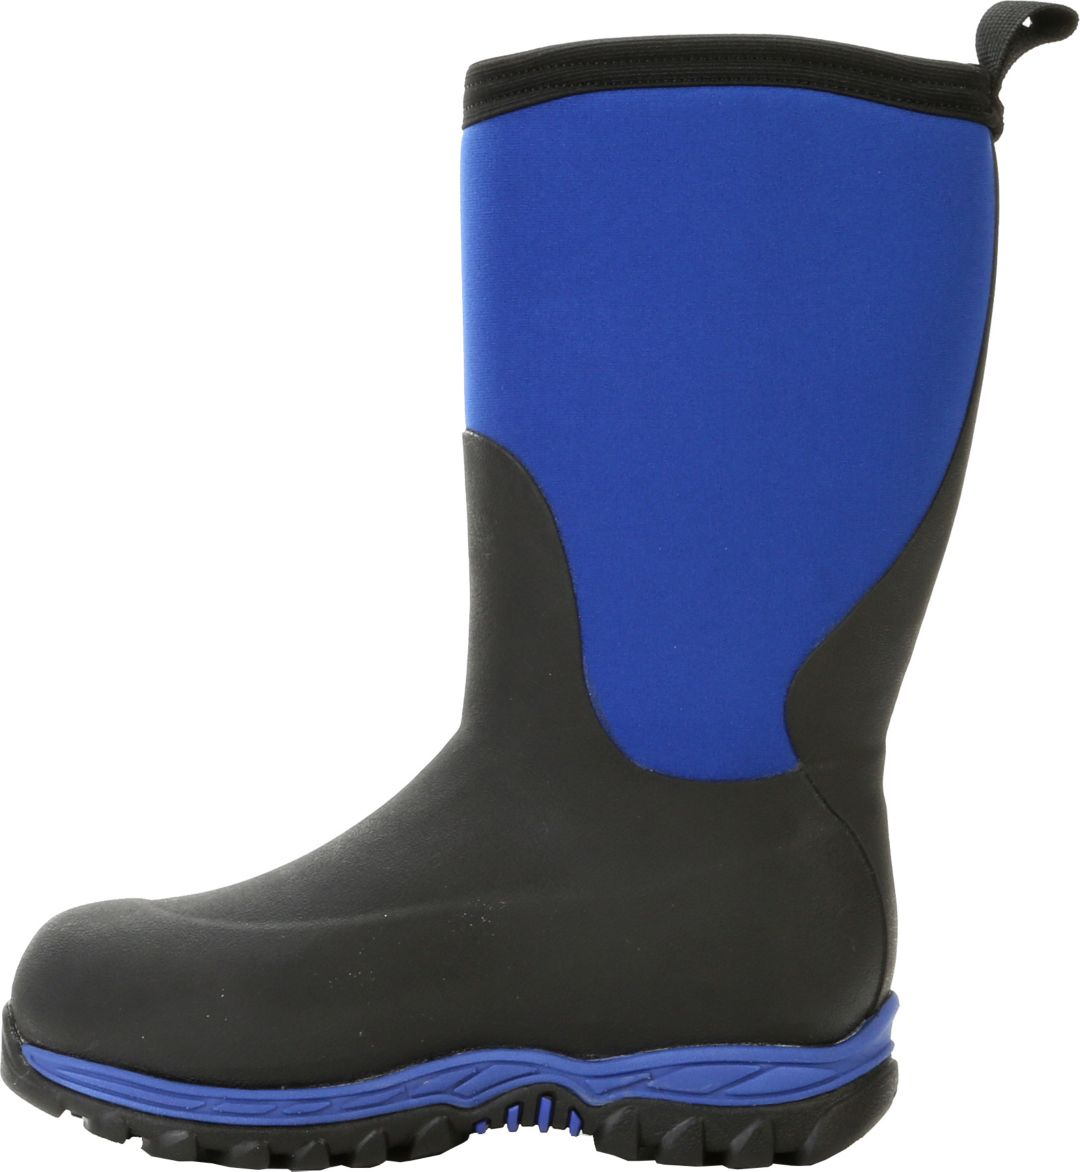 Muck Boot Co Kid/'s Rugged II Blue//Black Childrens Youth Sizes RG2-200 BRAND NEW